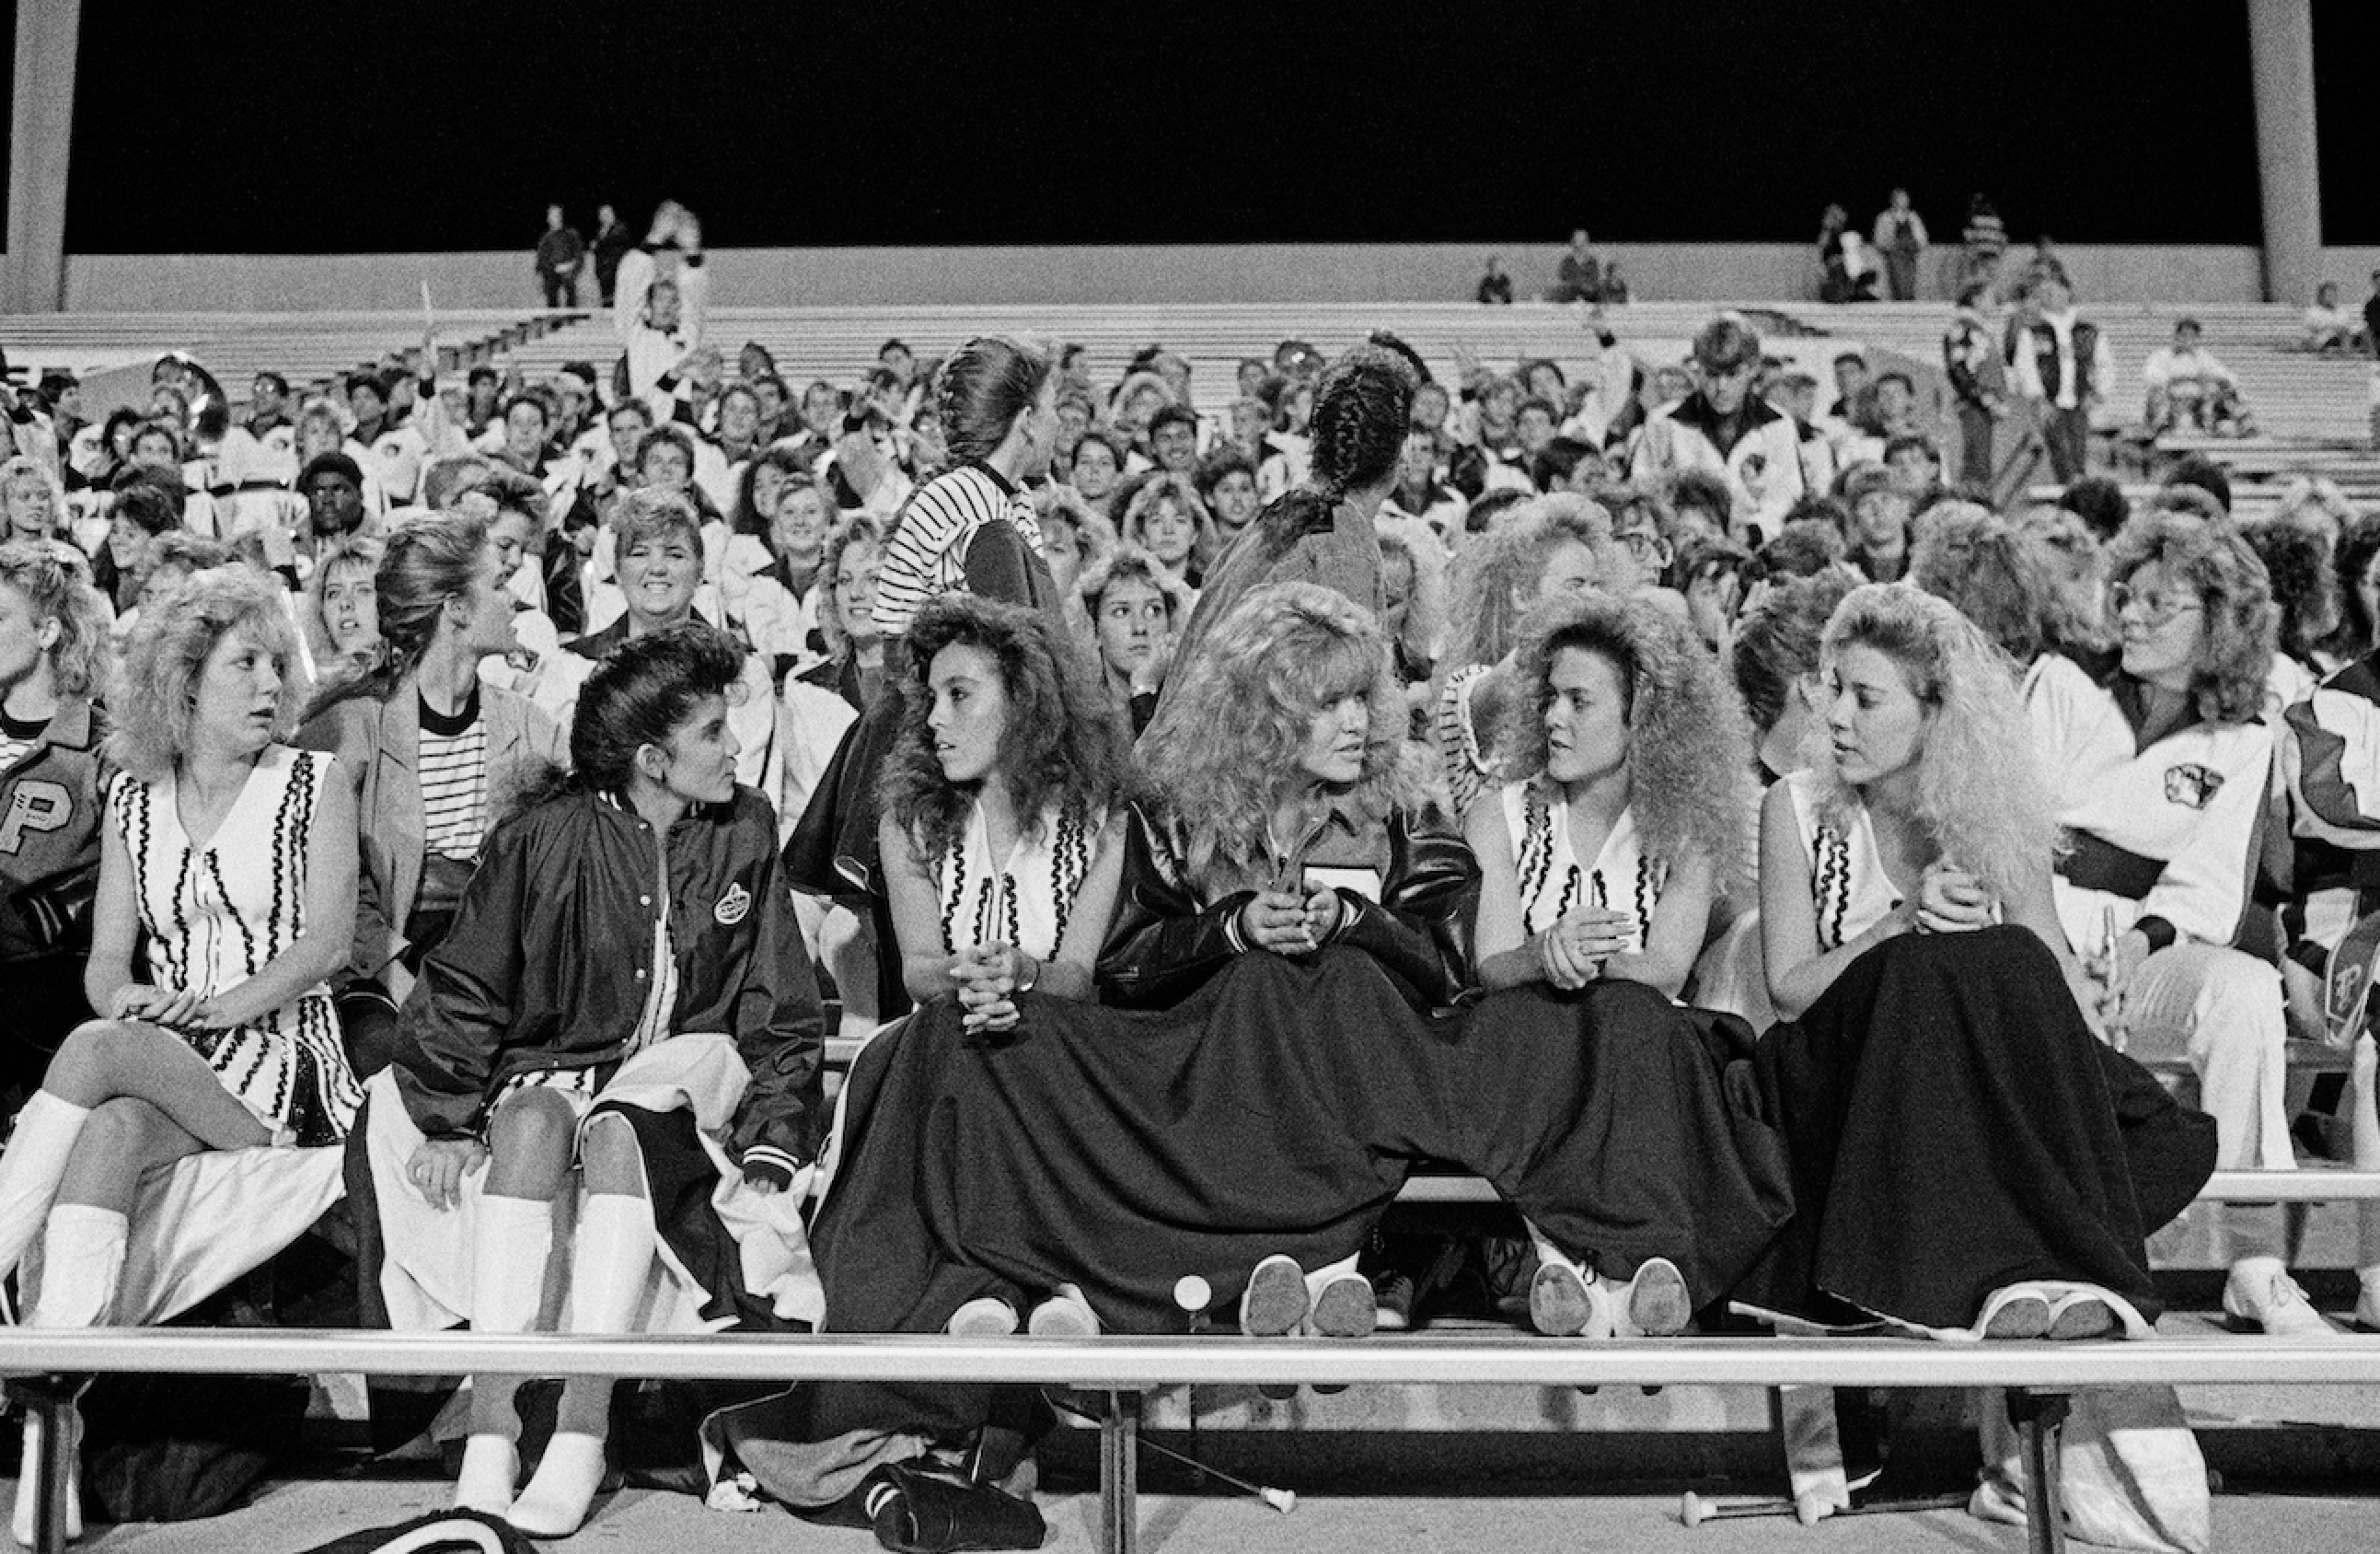 A row of cheerleaders sit on a bench with a crowd behind them